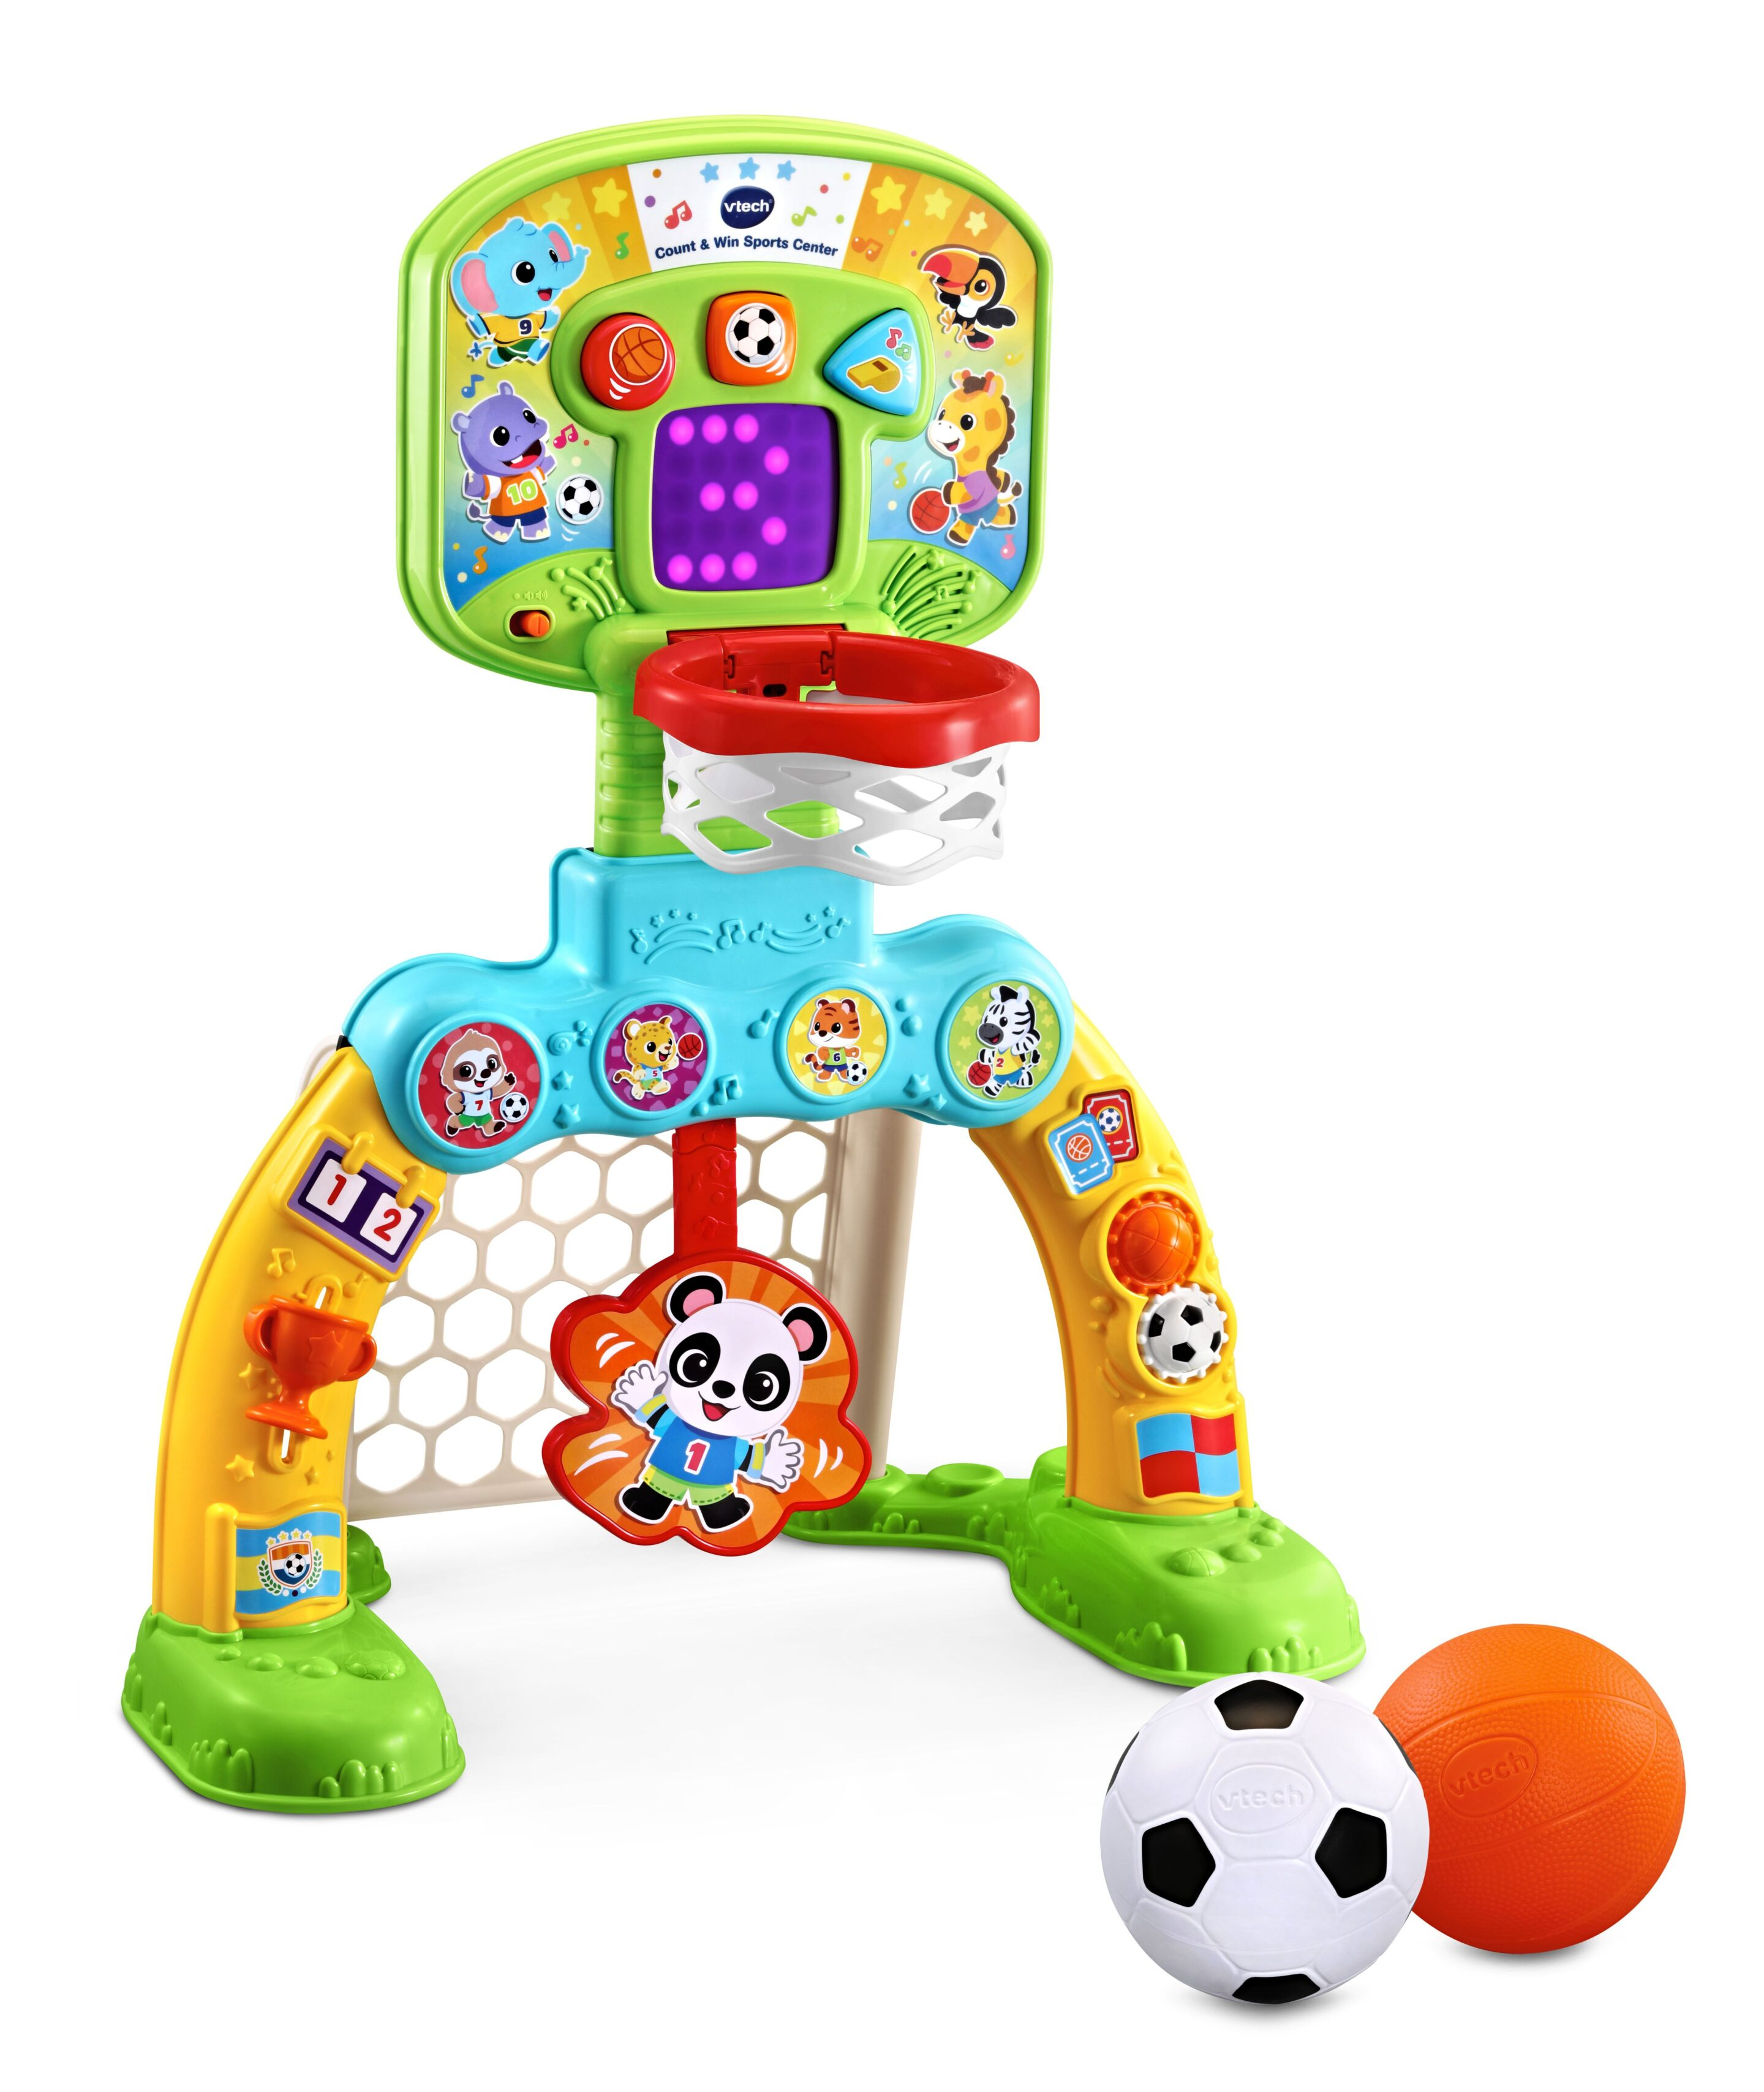 VTech Count & Win Sports Center Image